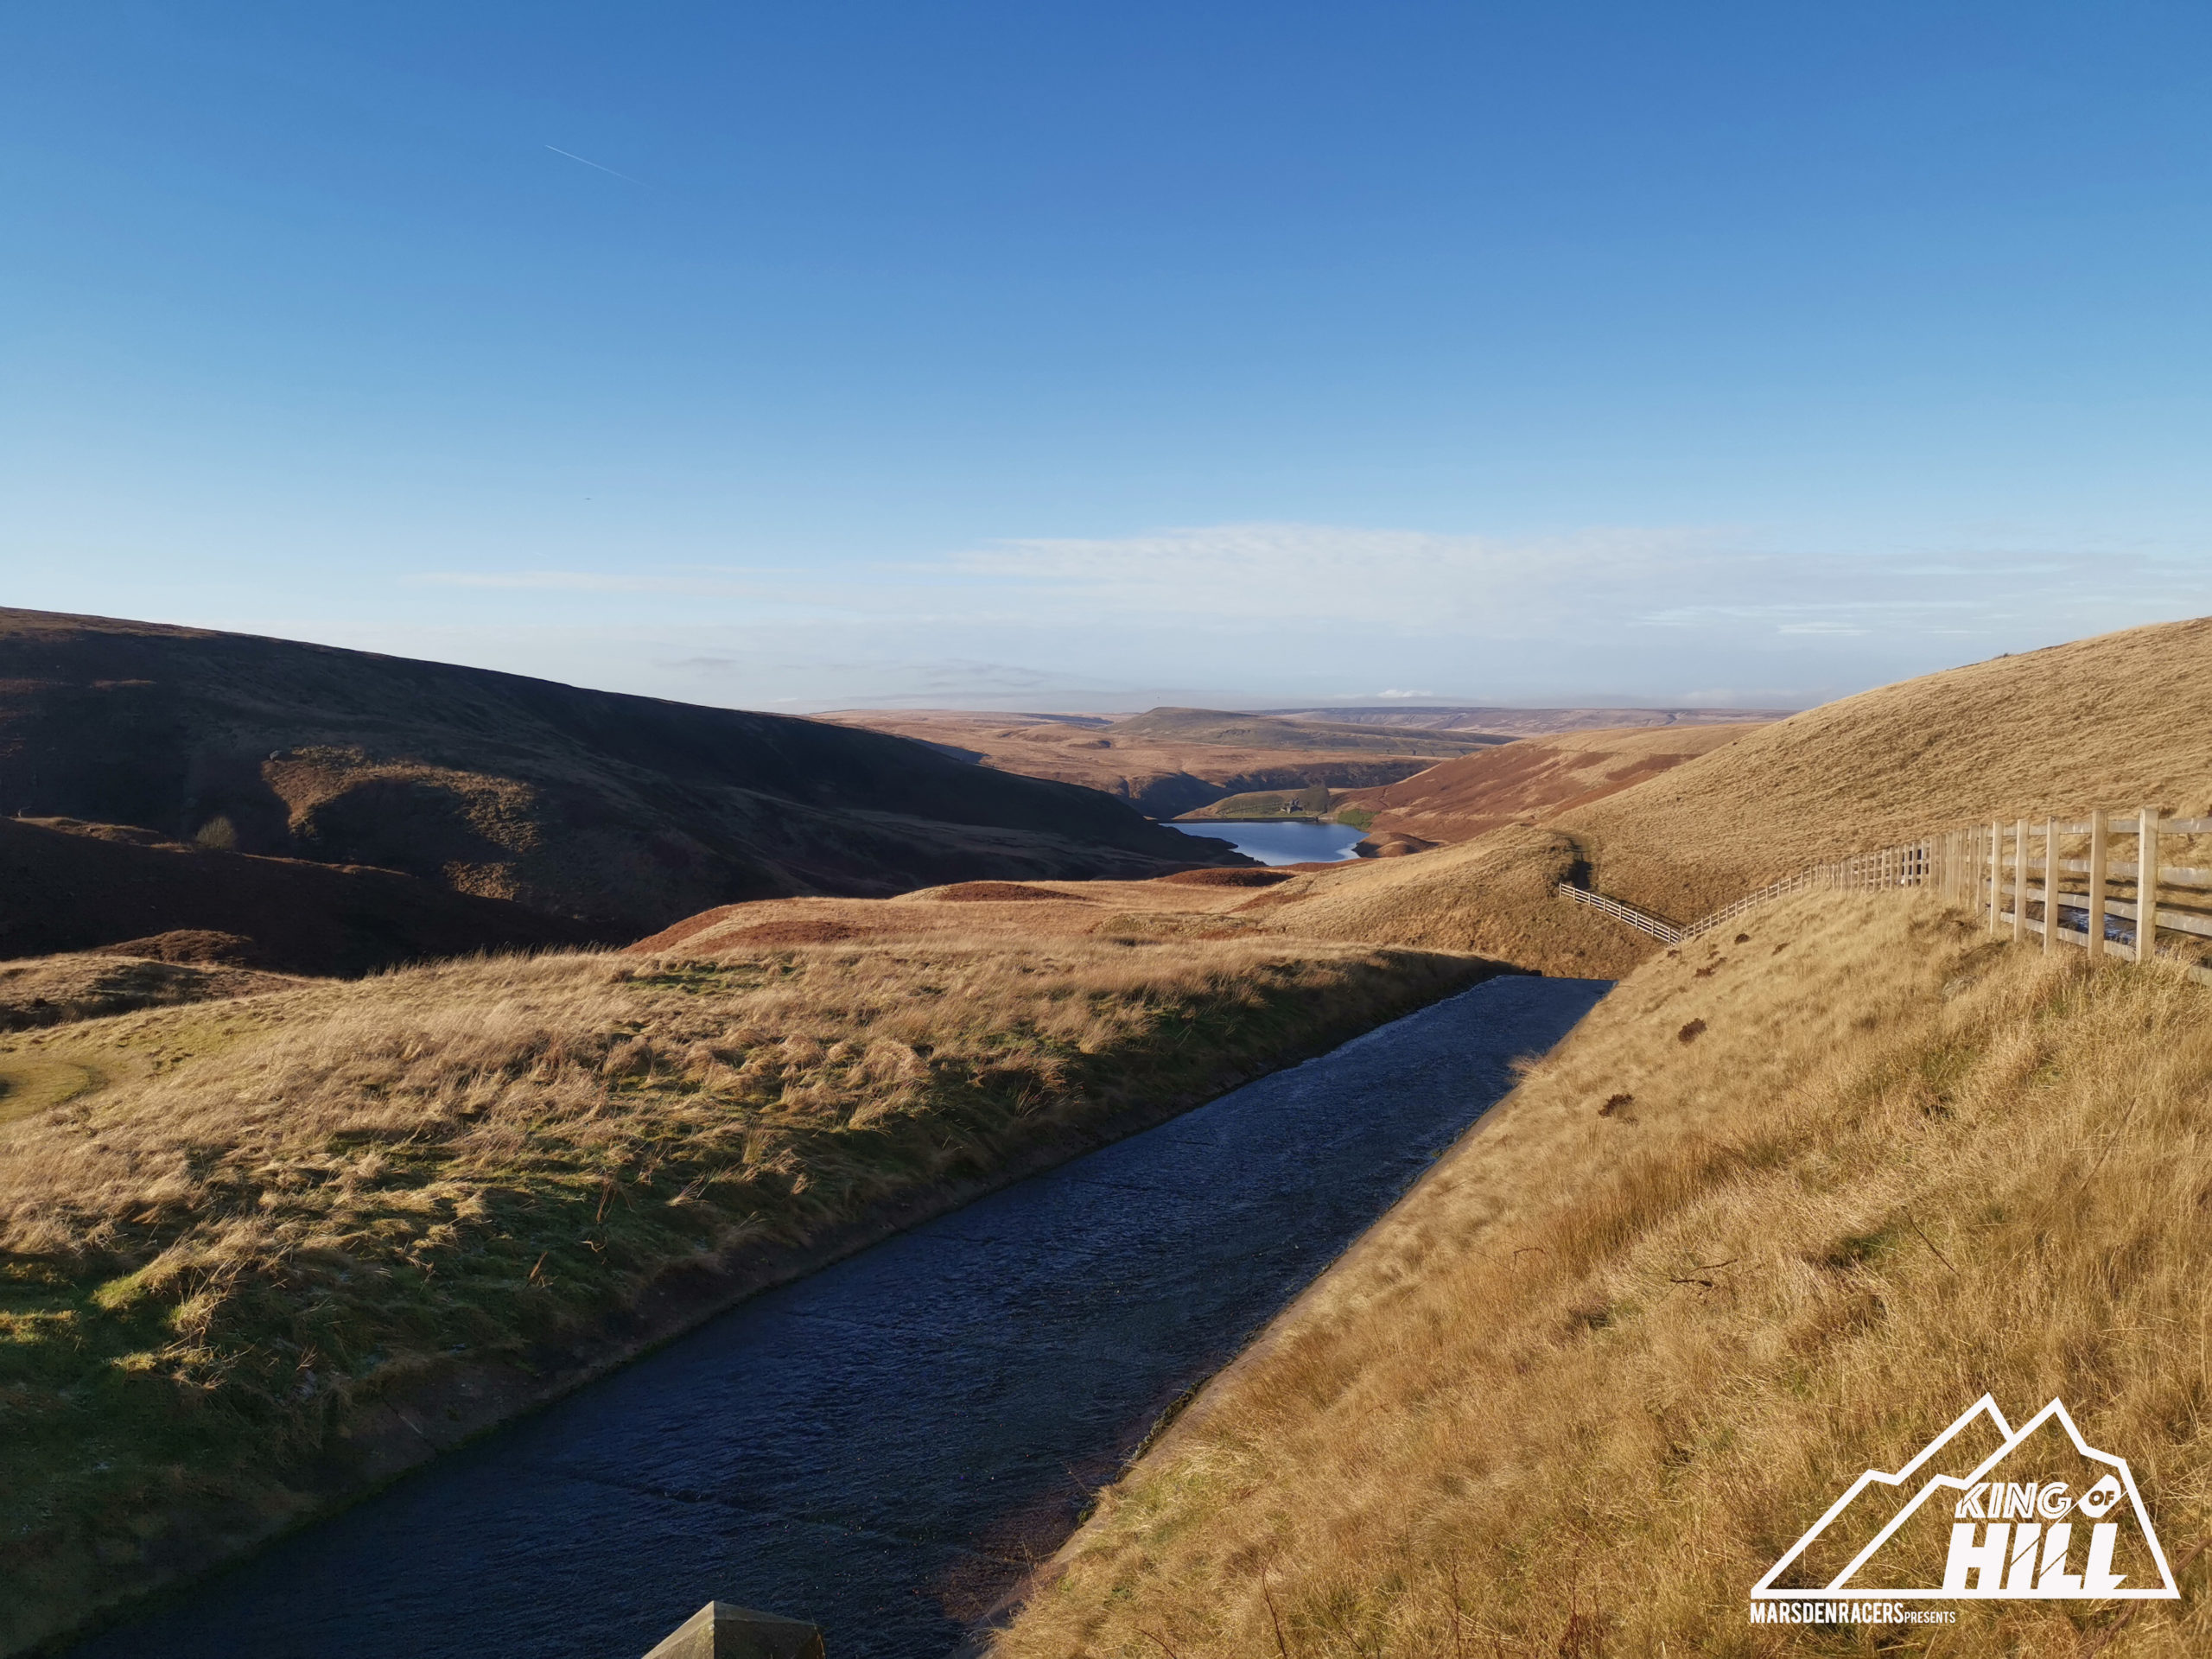 King of the Hill Course Route in Marsden